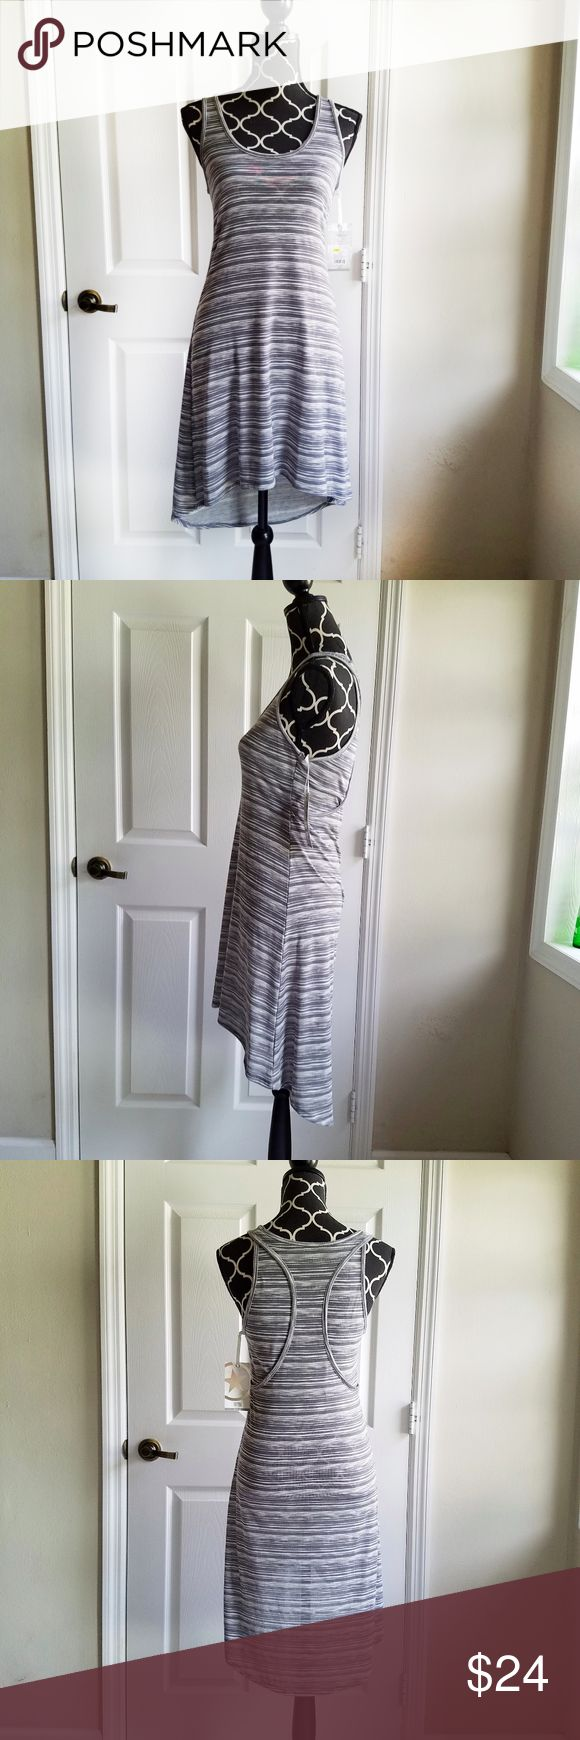 NWT Gray and White Striped Converse Dress New with tags Converse summer dress available, size small with gray and white stripes. It is made of polyester, rayon and spandex and is slightly stretchy and has an asymmetrical hem - shorter in the front, longer in the back.   Laying flay, the bust measures 15 inches and the length is about 32 inches in the front and 38 inches in the back. And it's machine washable and comes from a smoke-free home. :)  I usually ship within one day of sale! :)…